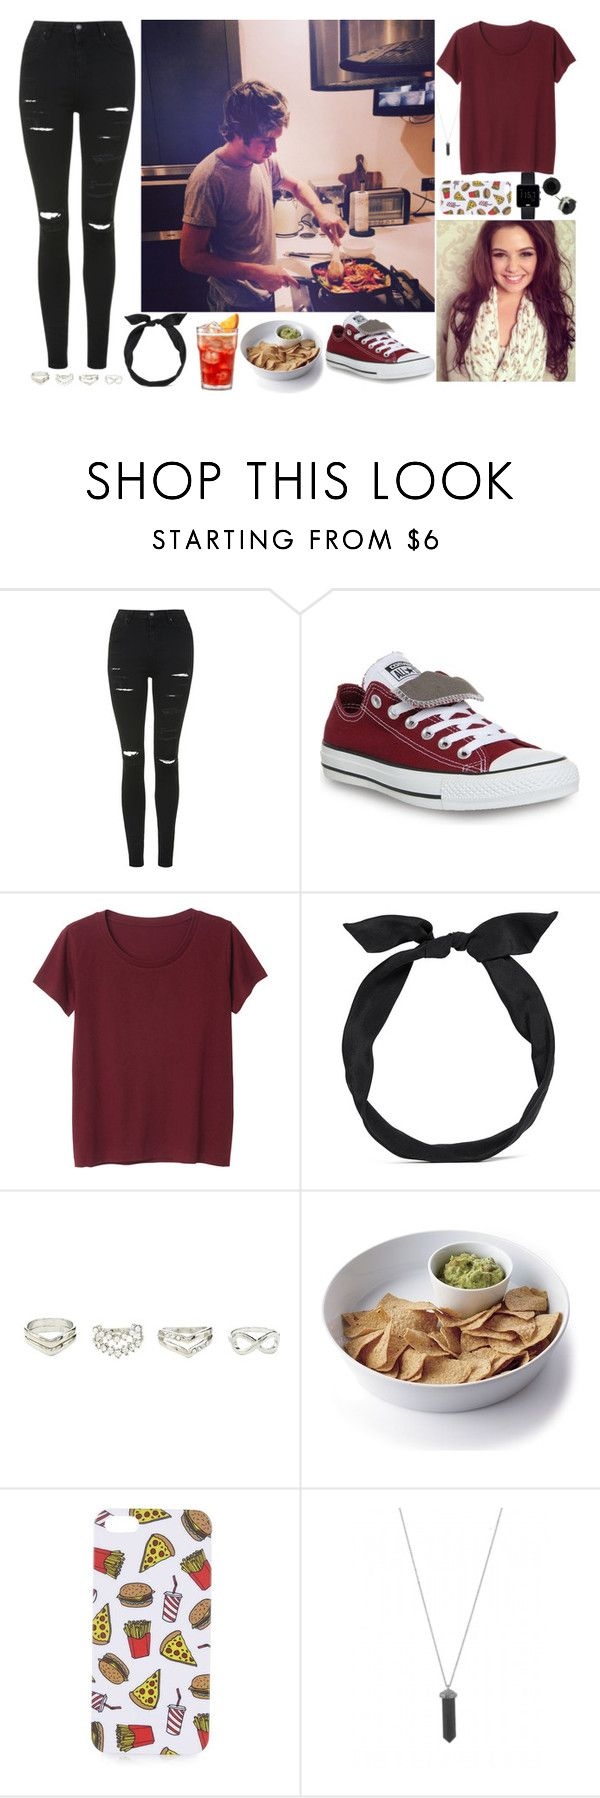 """Date In With Niall"" by mary-5so1ds ❤ liked on Polyvore featuring Topshop, Converse, Monki, yunotme, Charlotte Russe, Crate and Barrel, Braun, Karen Kane, OneDirection and NiallHoran"